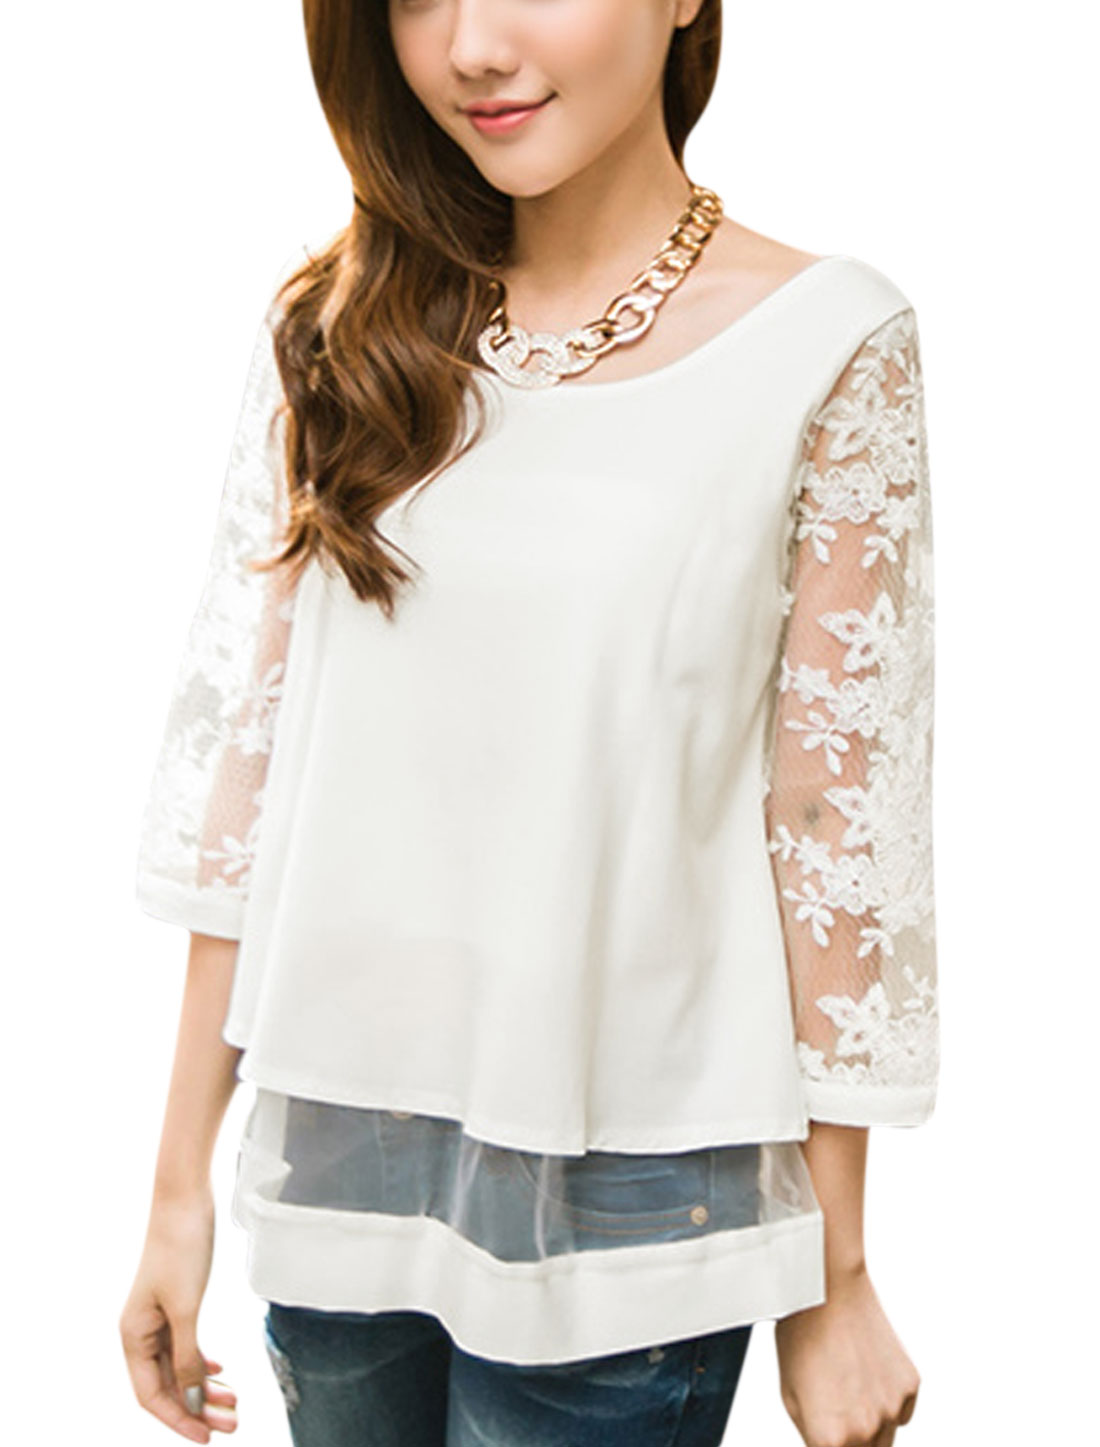 Women Floral Detail Round Neck 3/4 Sleeve Casual Shirt White XS